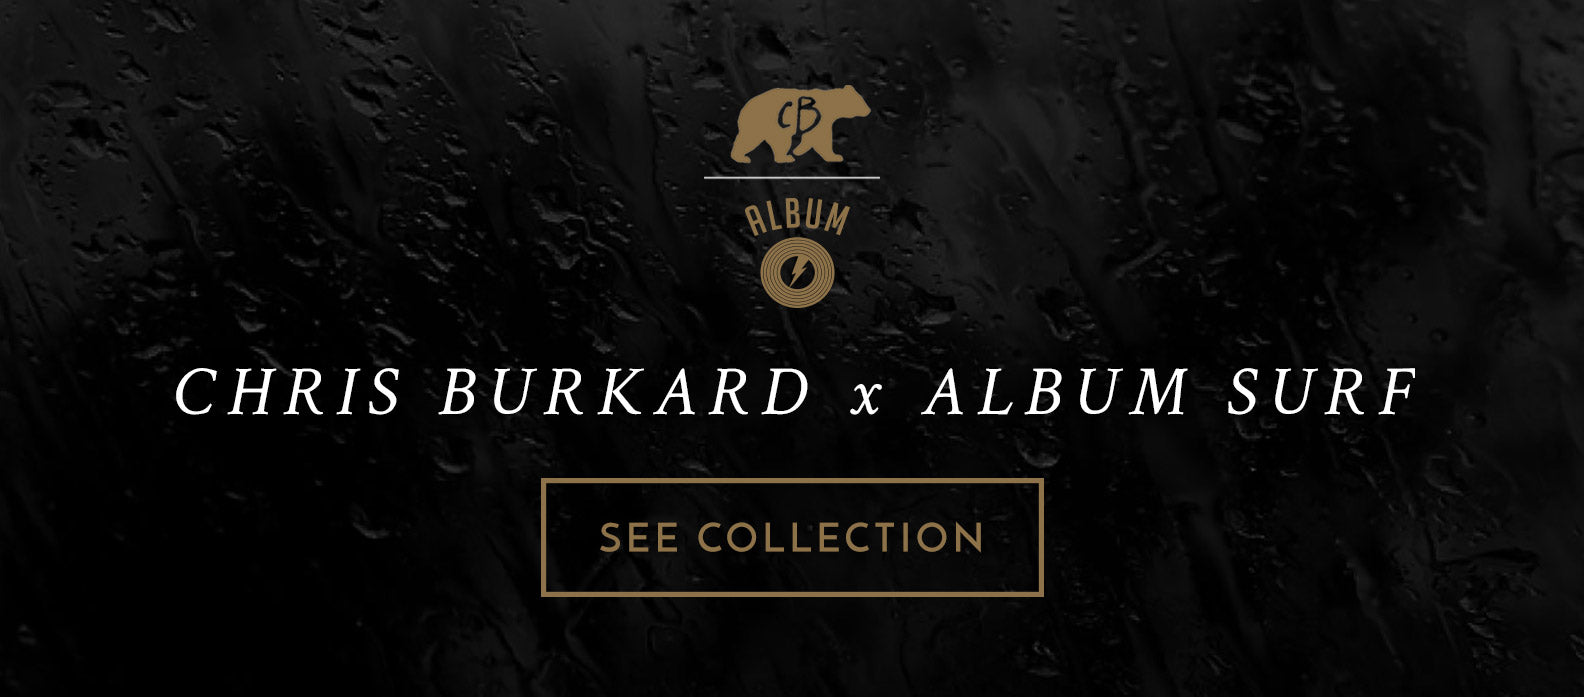 Chris Burkard x Album Surf Collection